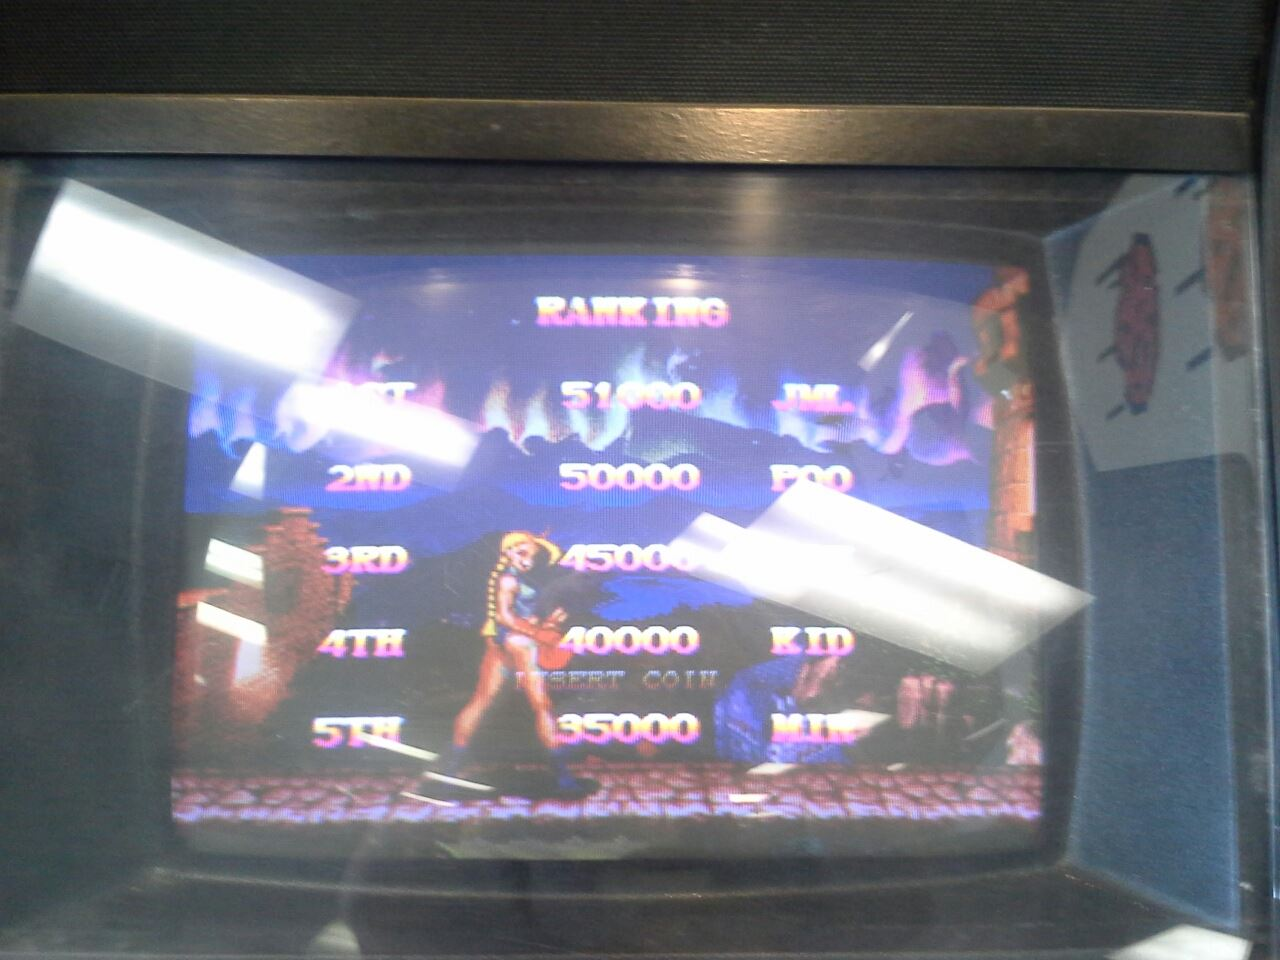 Super Street Fighter II Turbo 51,000 points